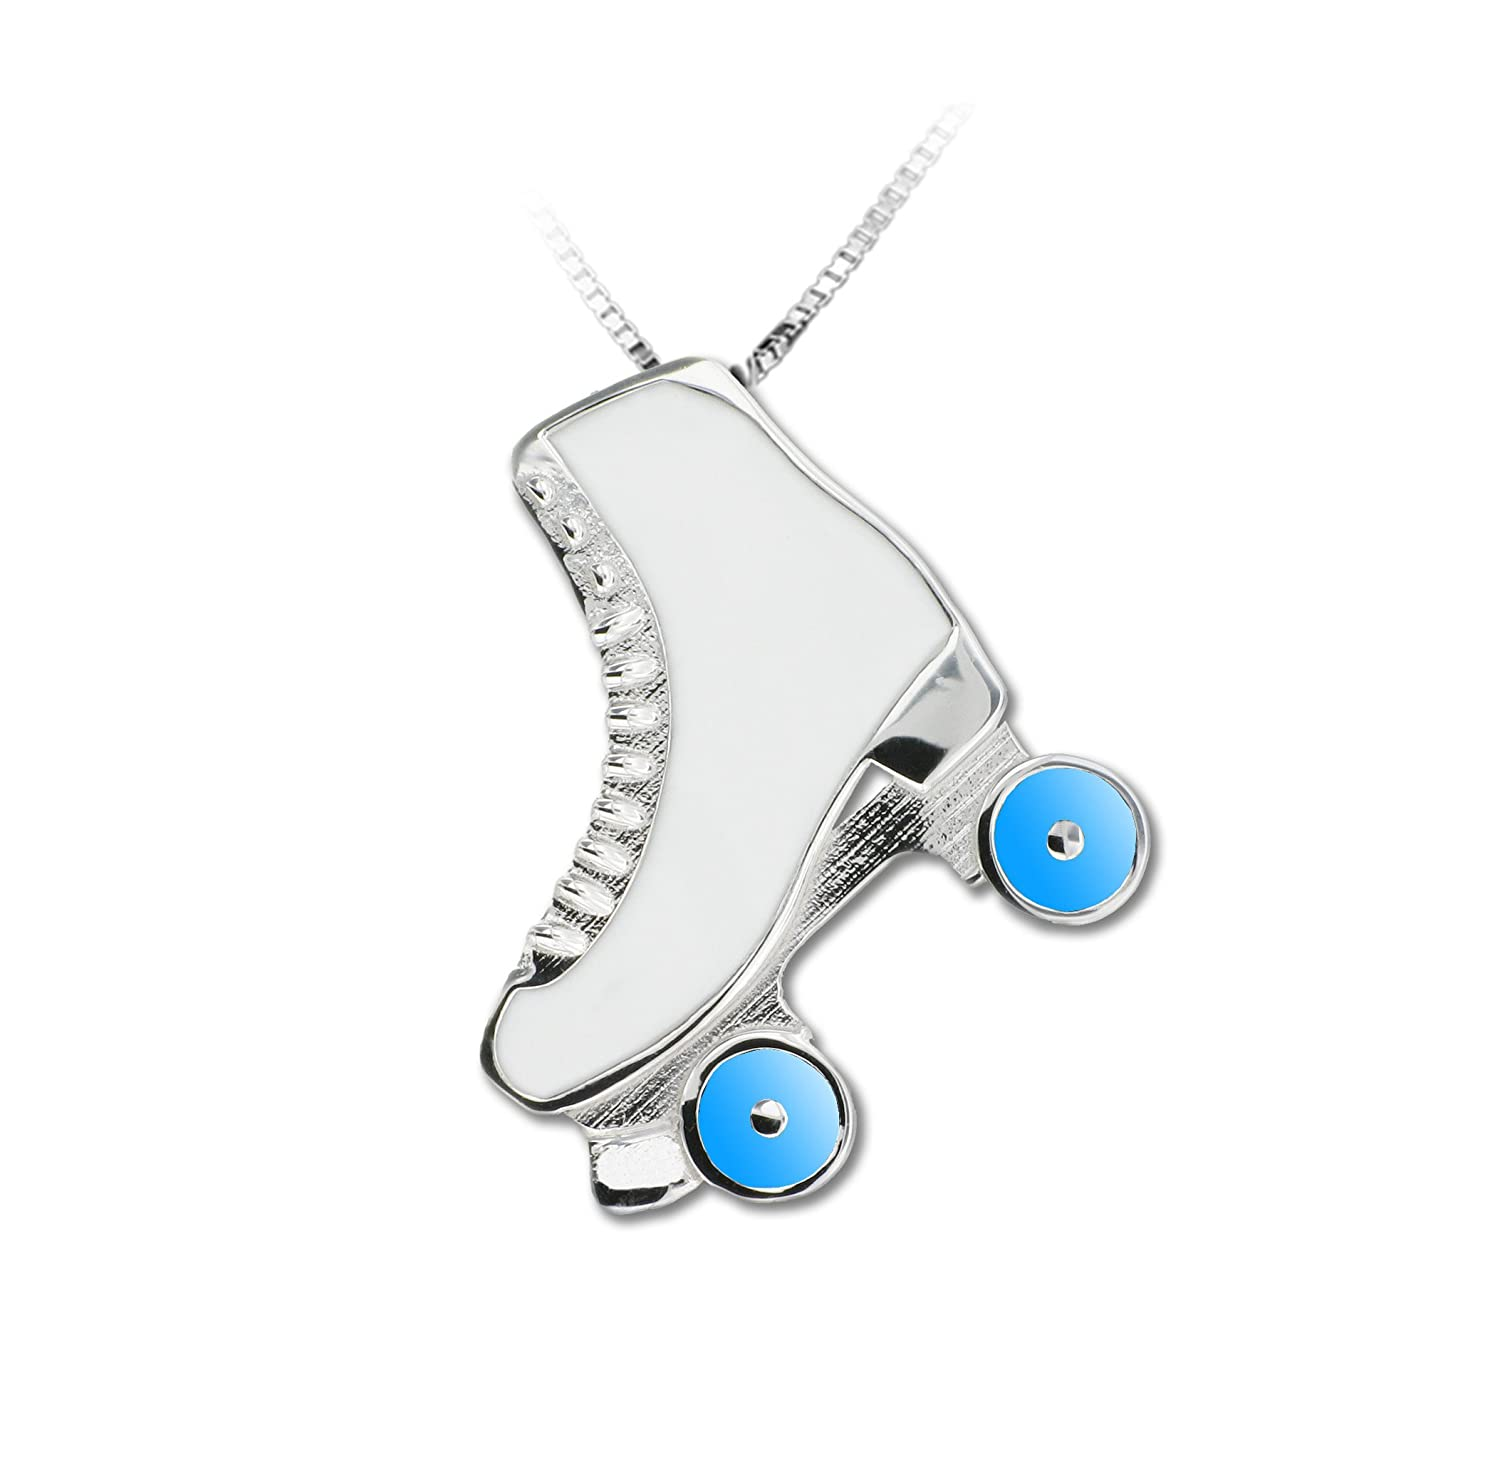 MIKELART Jewel Pendant Roller Skate Enamelled Light Blue Small